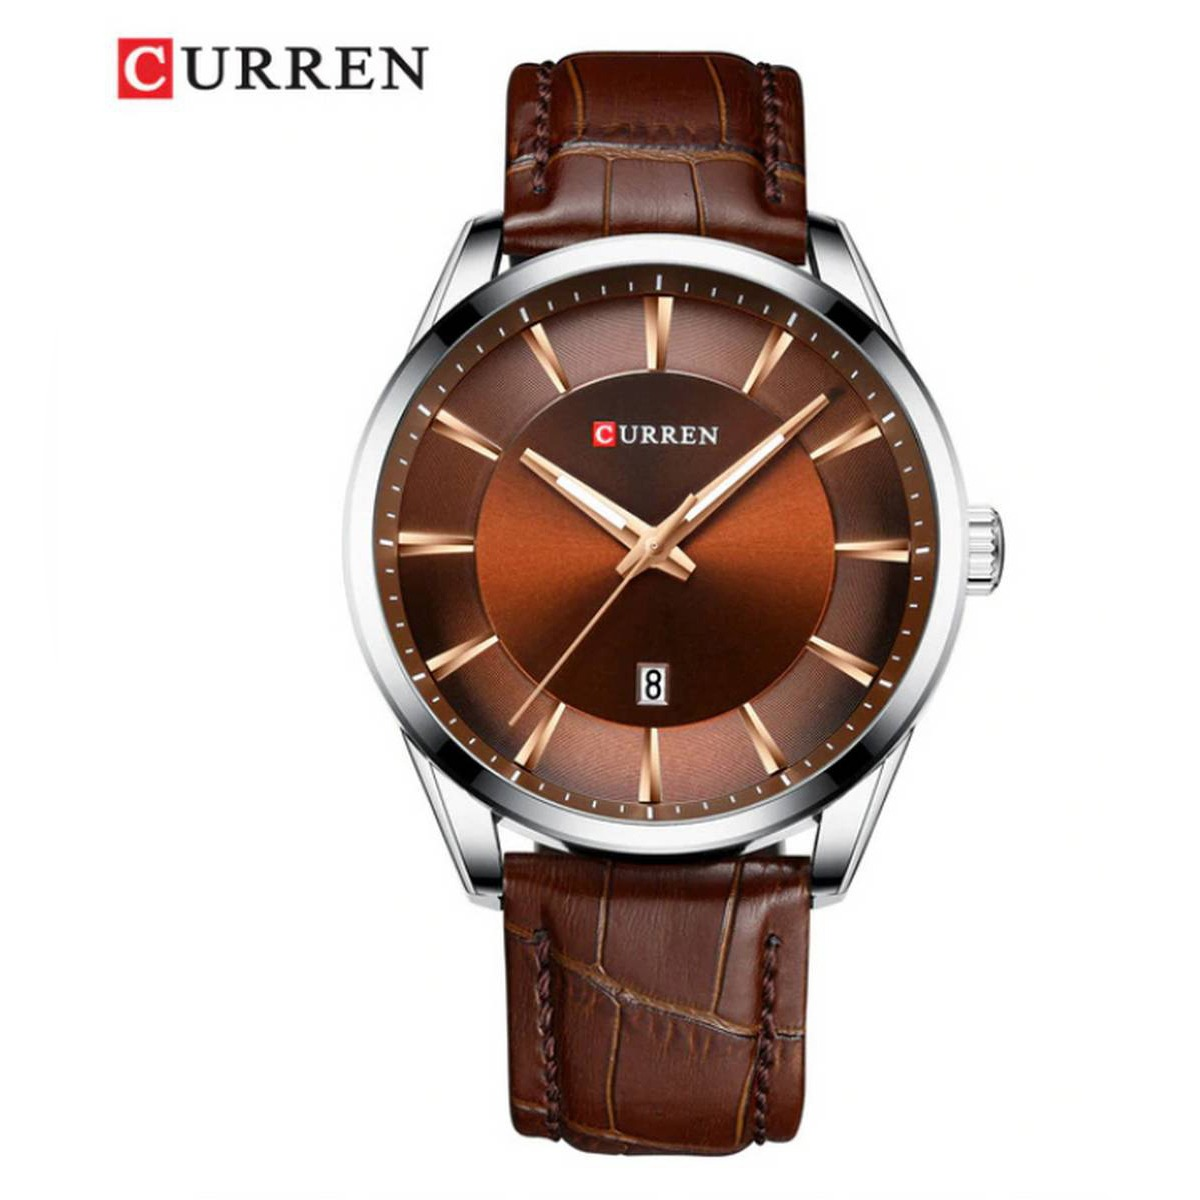 CURREN Leather Straps Japan Quartz Wristwatches With Box And Bag - 8365